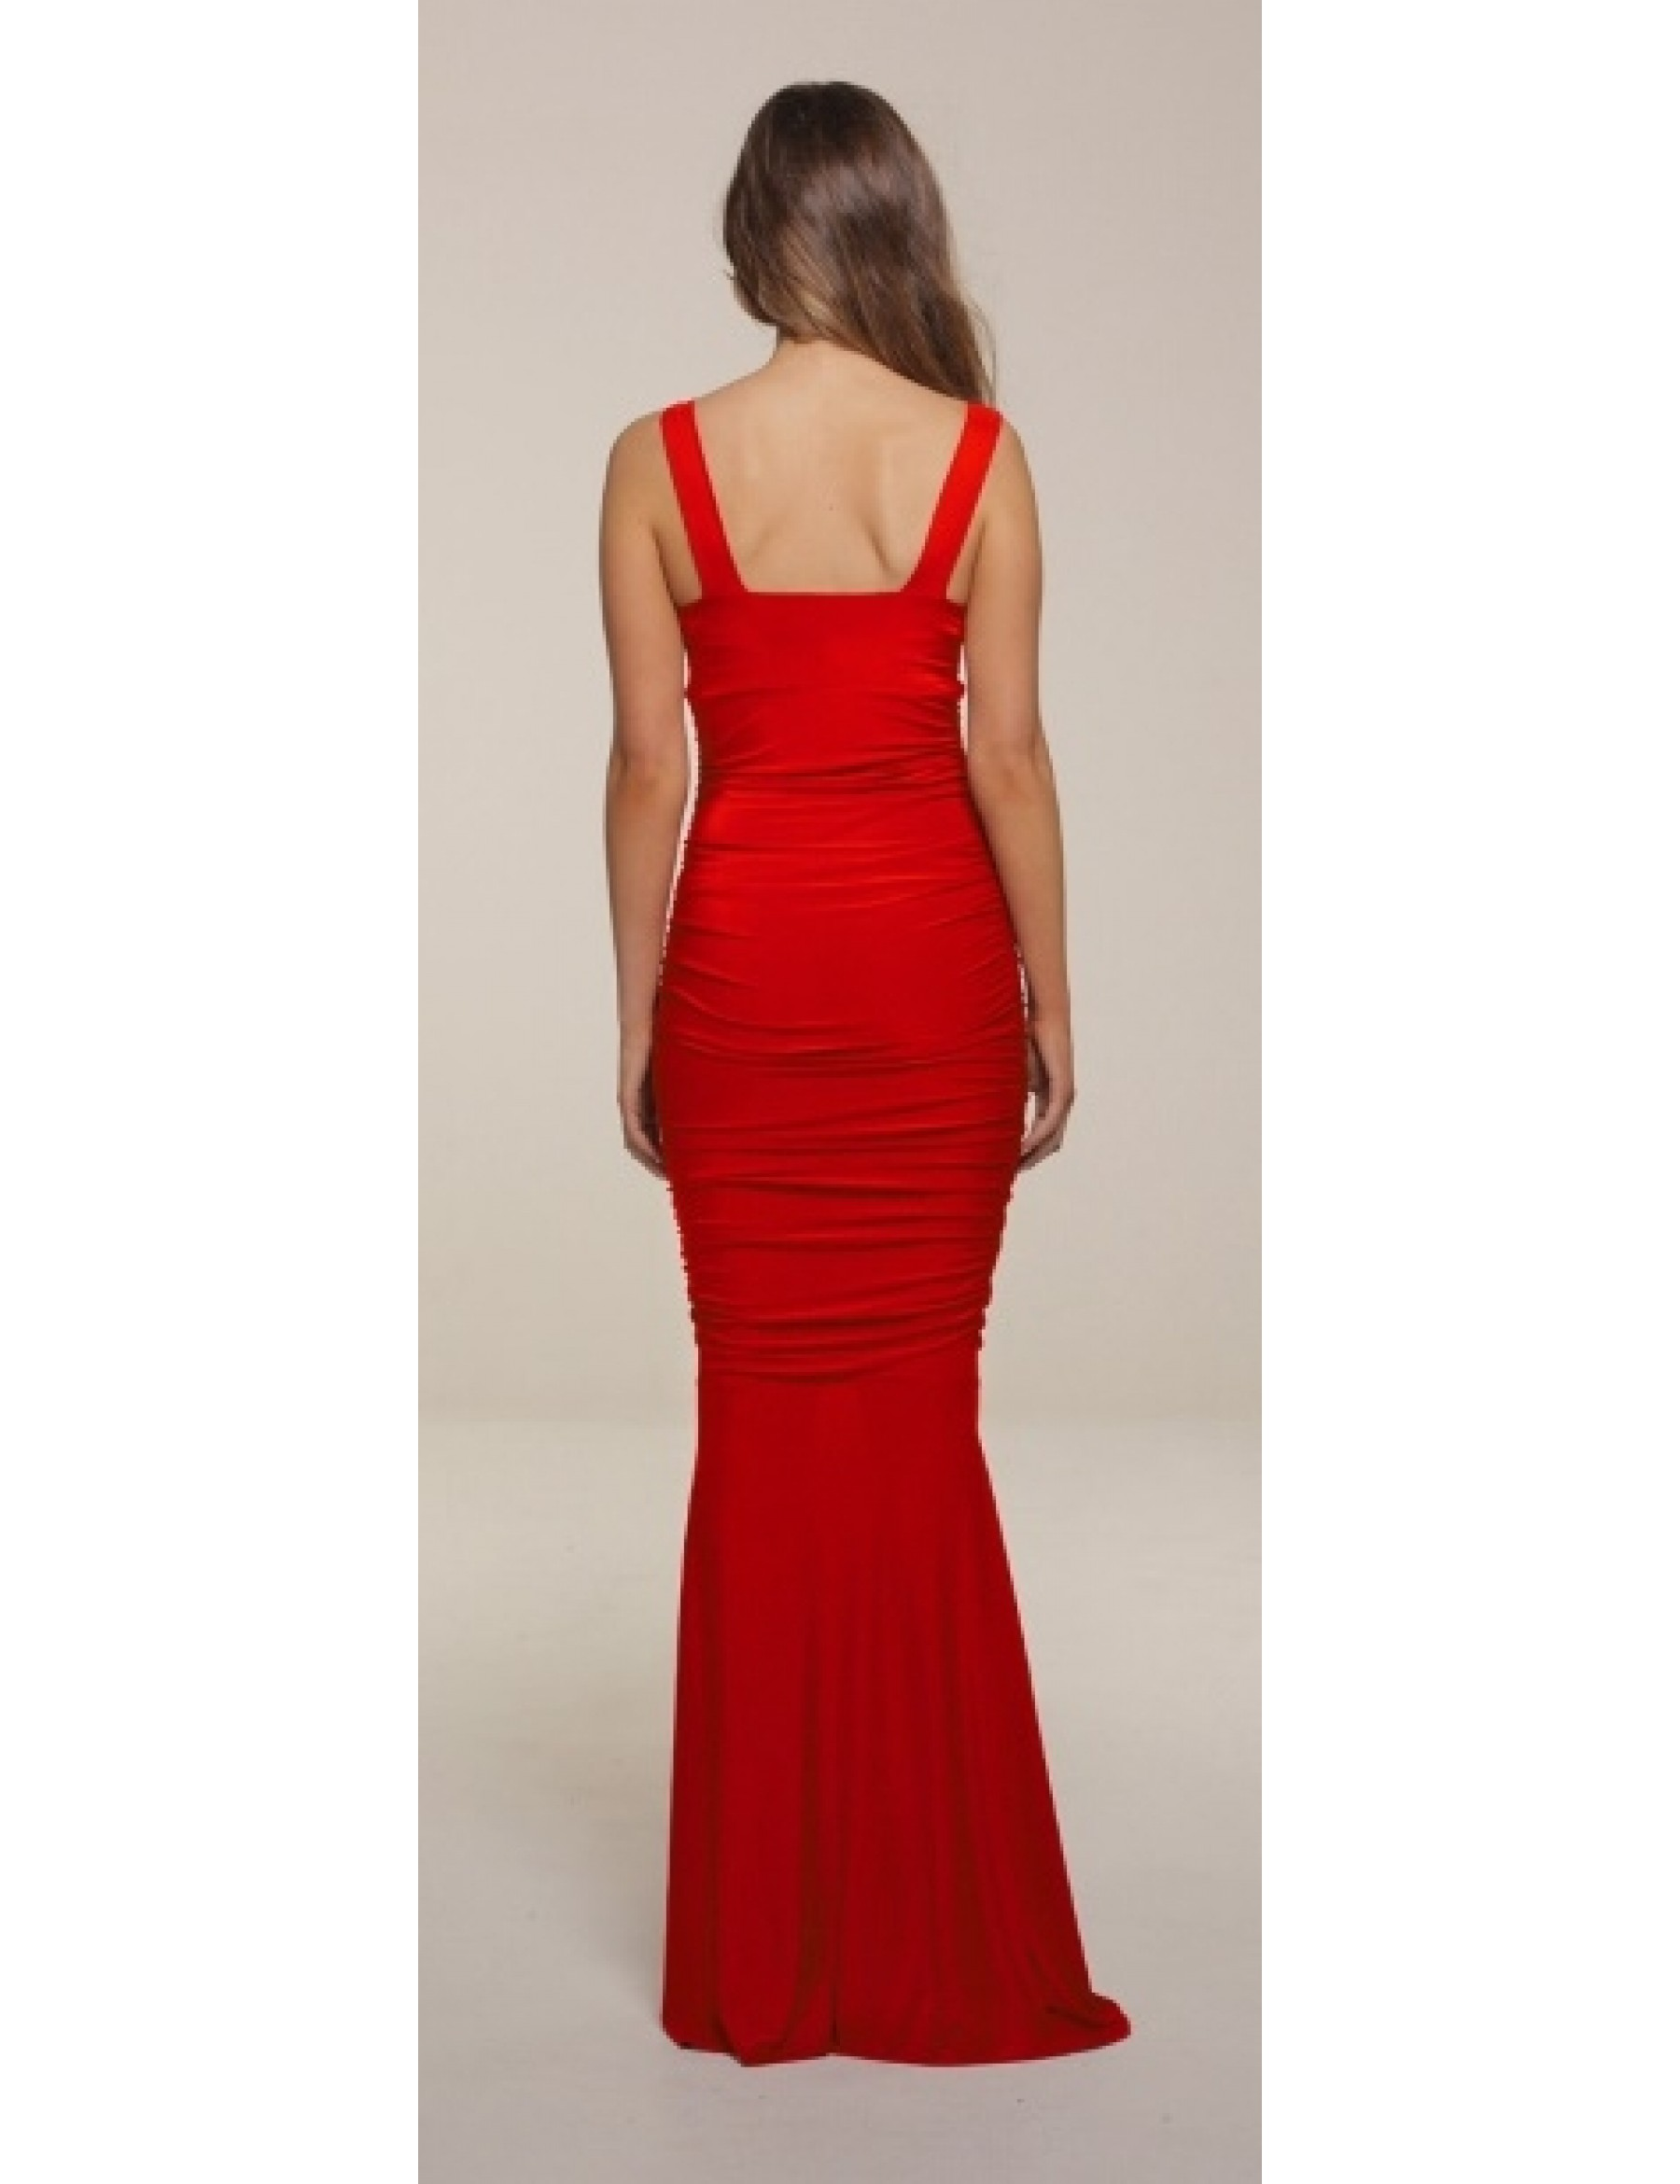 Berry Slinky Ruched Evening Dress